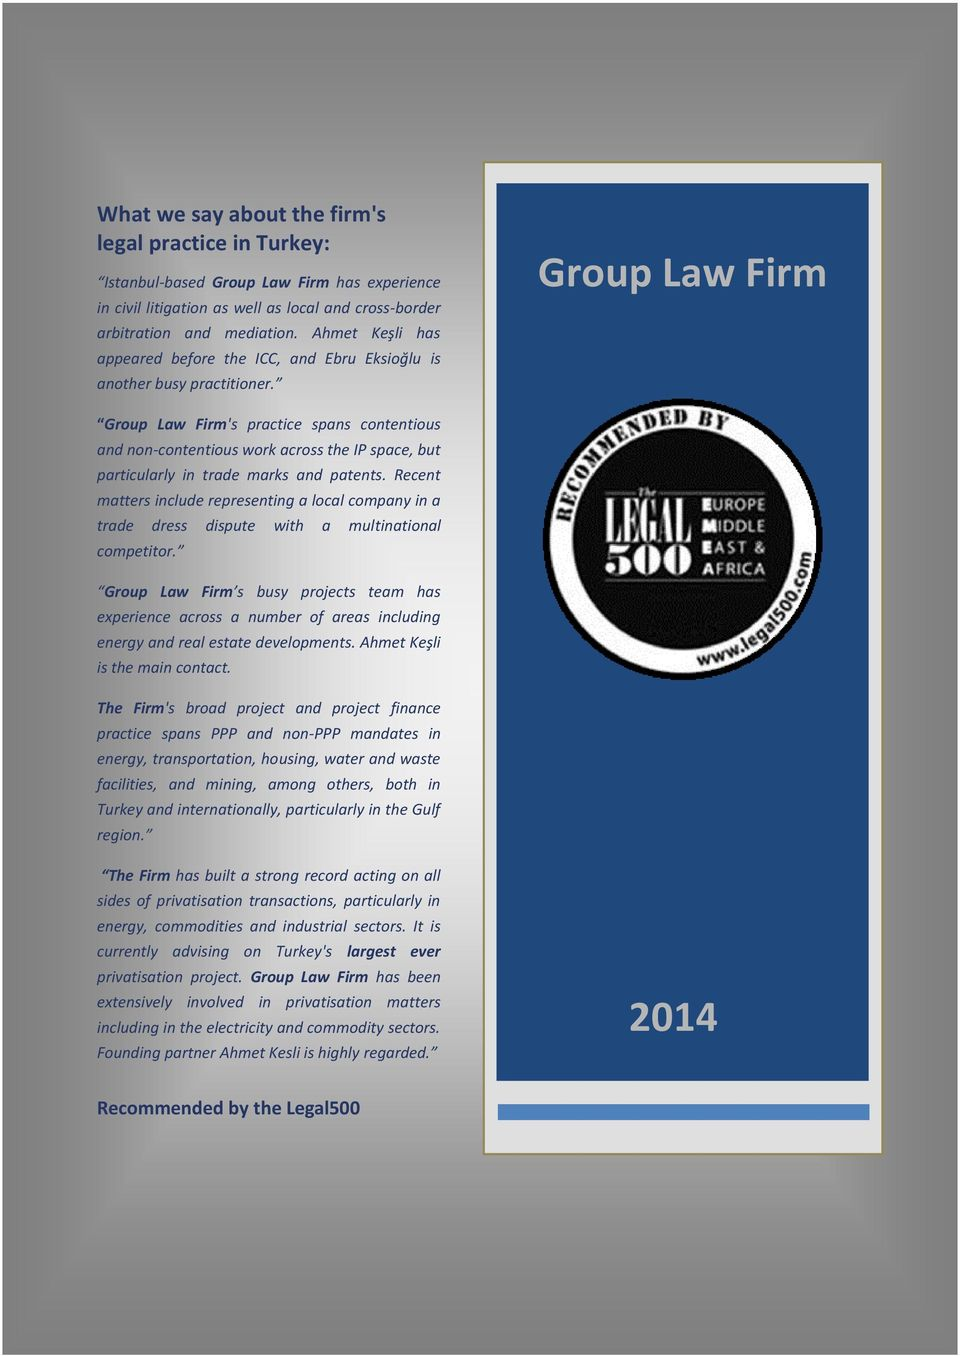 Group Law Firm Group Law Firm's practice spans contentious and non-contentious work across the IP space, but particularly in trade marks and patents.